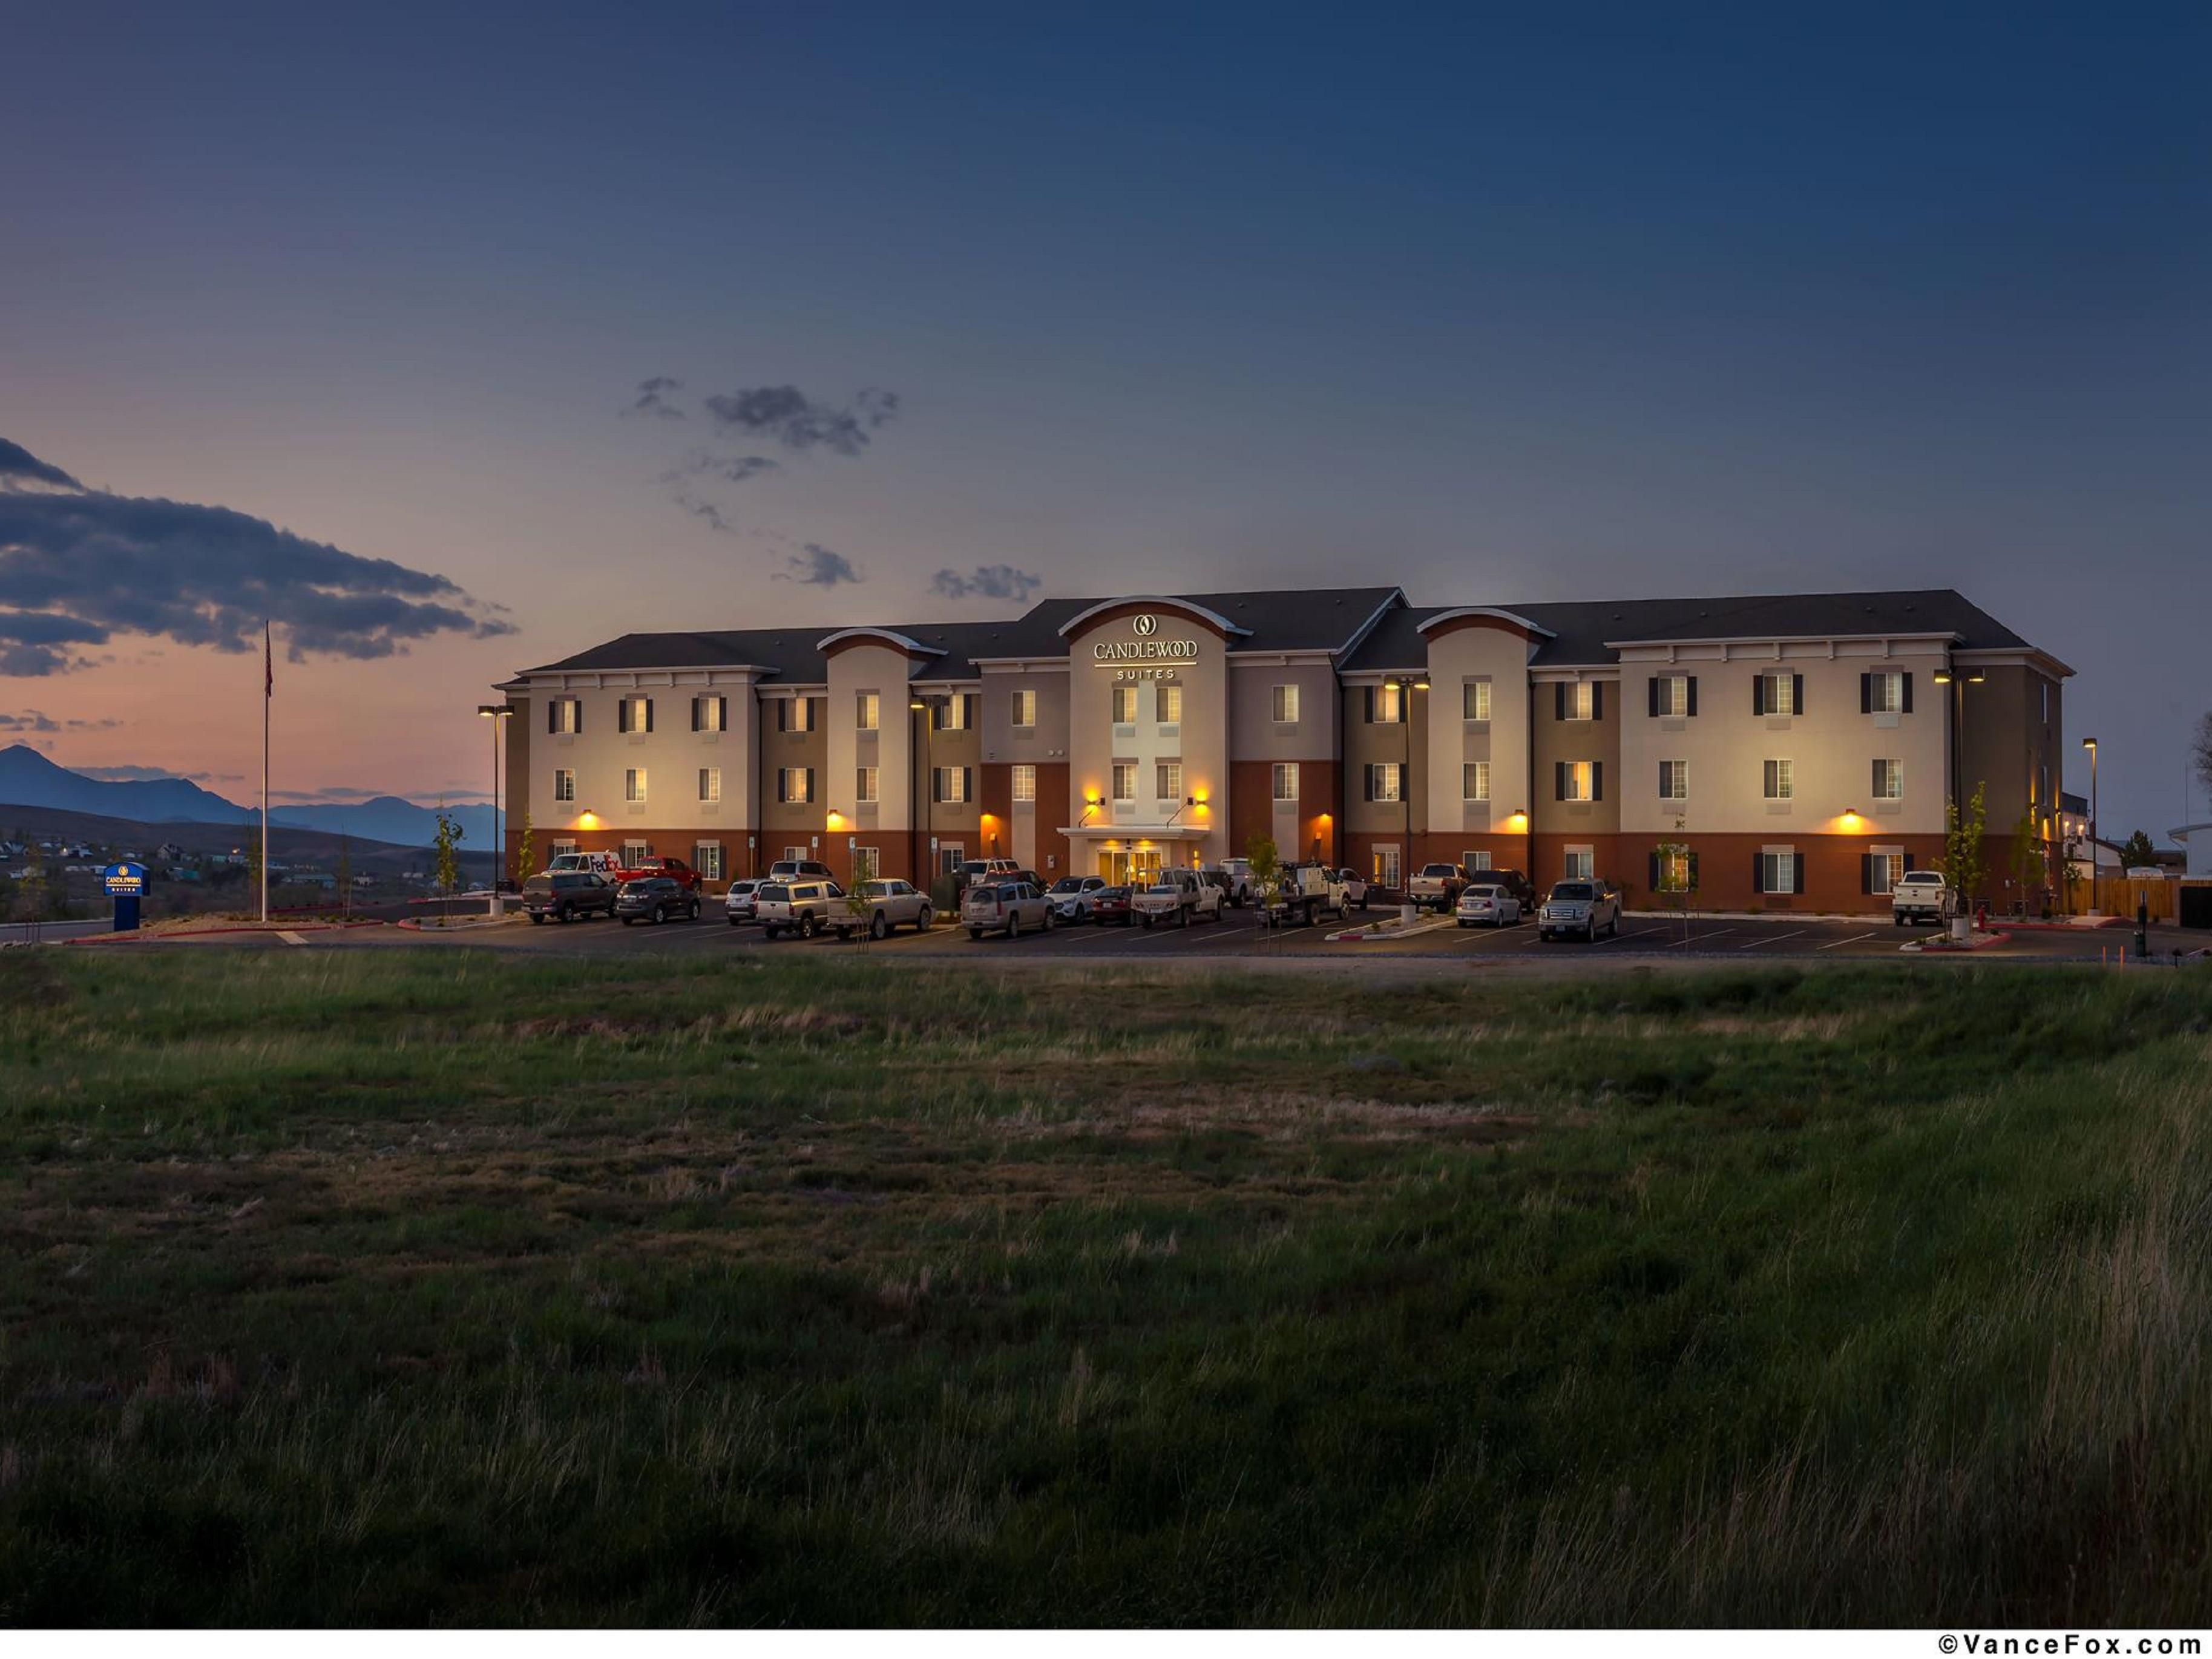 Winnemucca hotels candlewood suites winnemucca extended stay winnemucca hotels candlewood suites winnemucca extended stay hotel in winnemucca nevada junglespirit